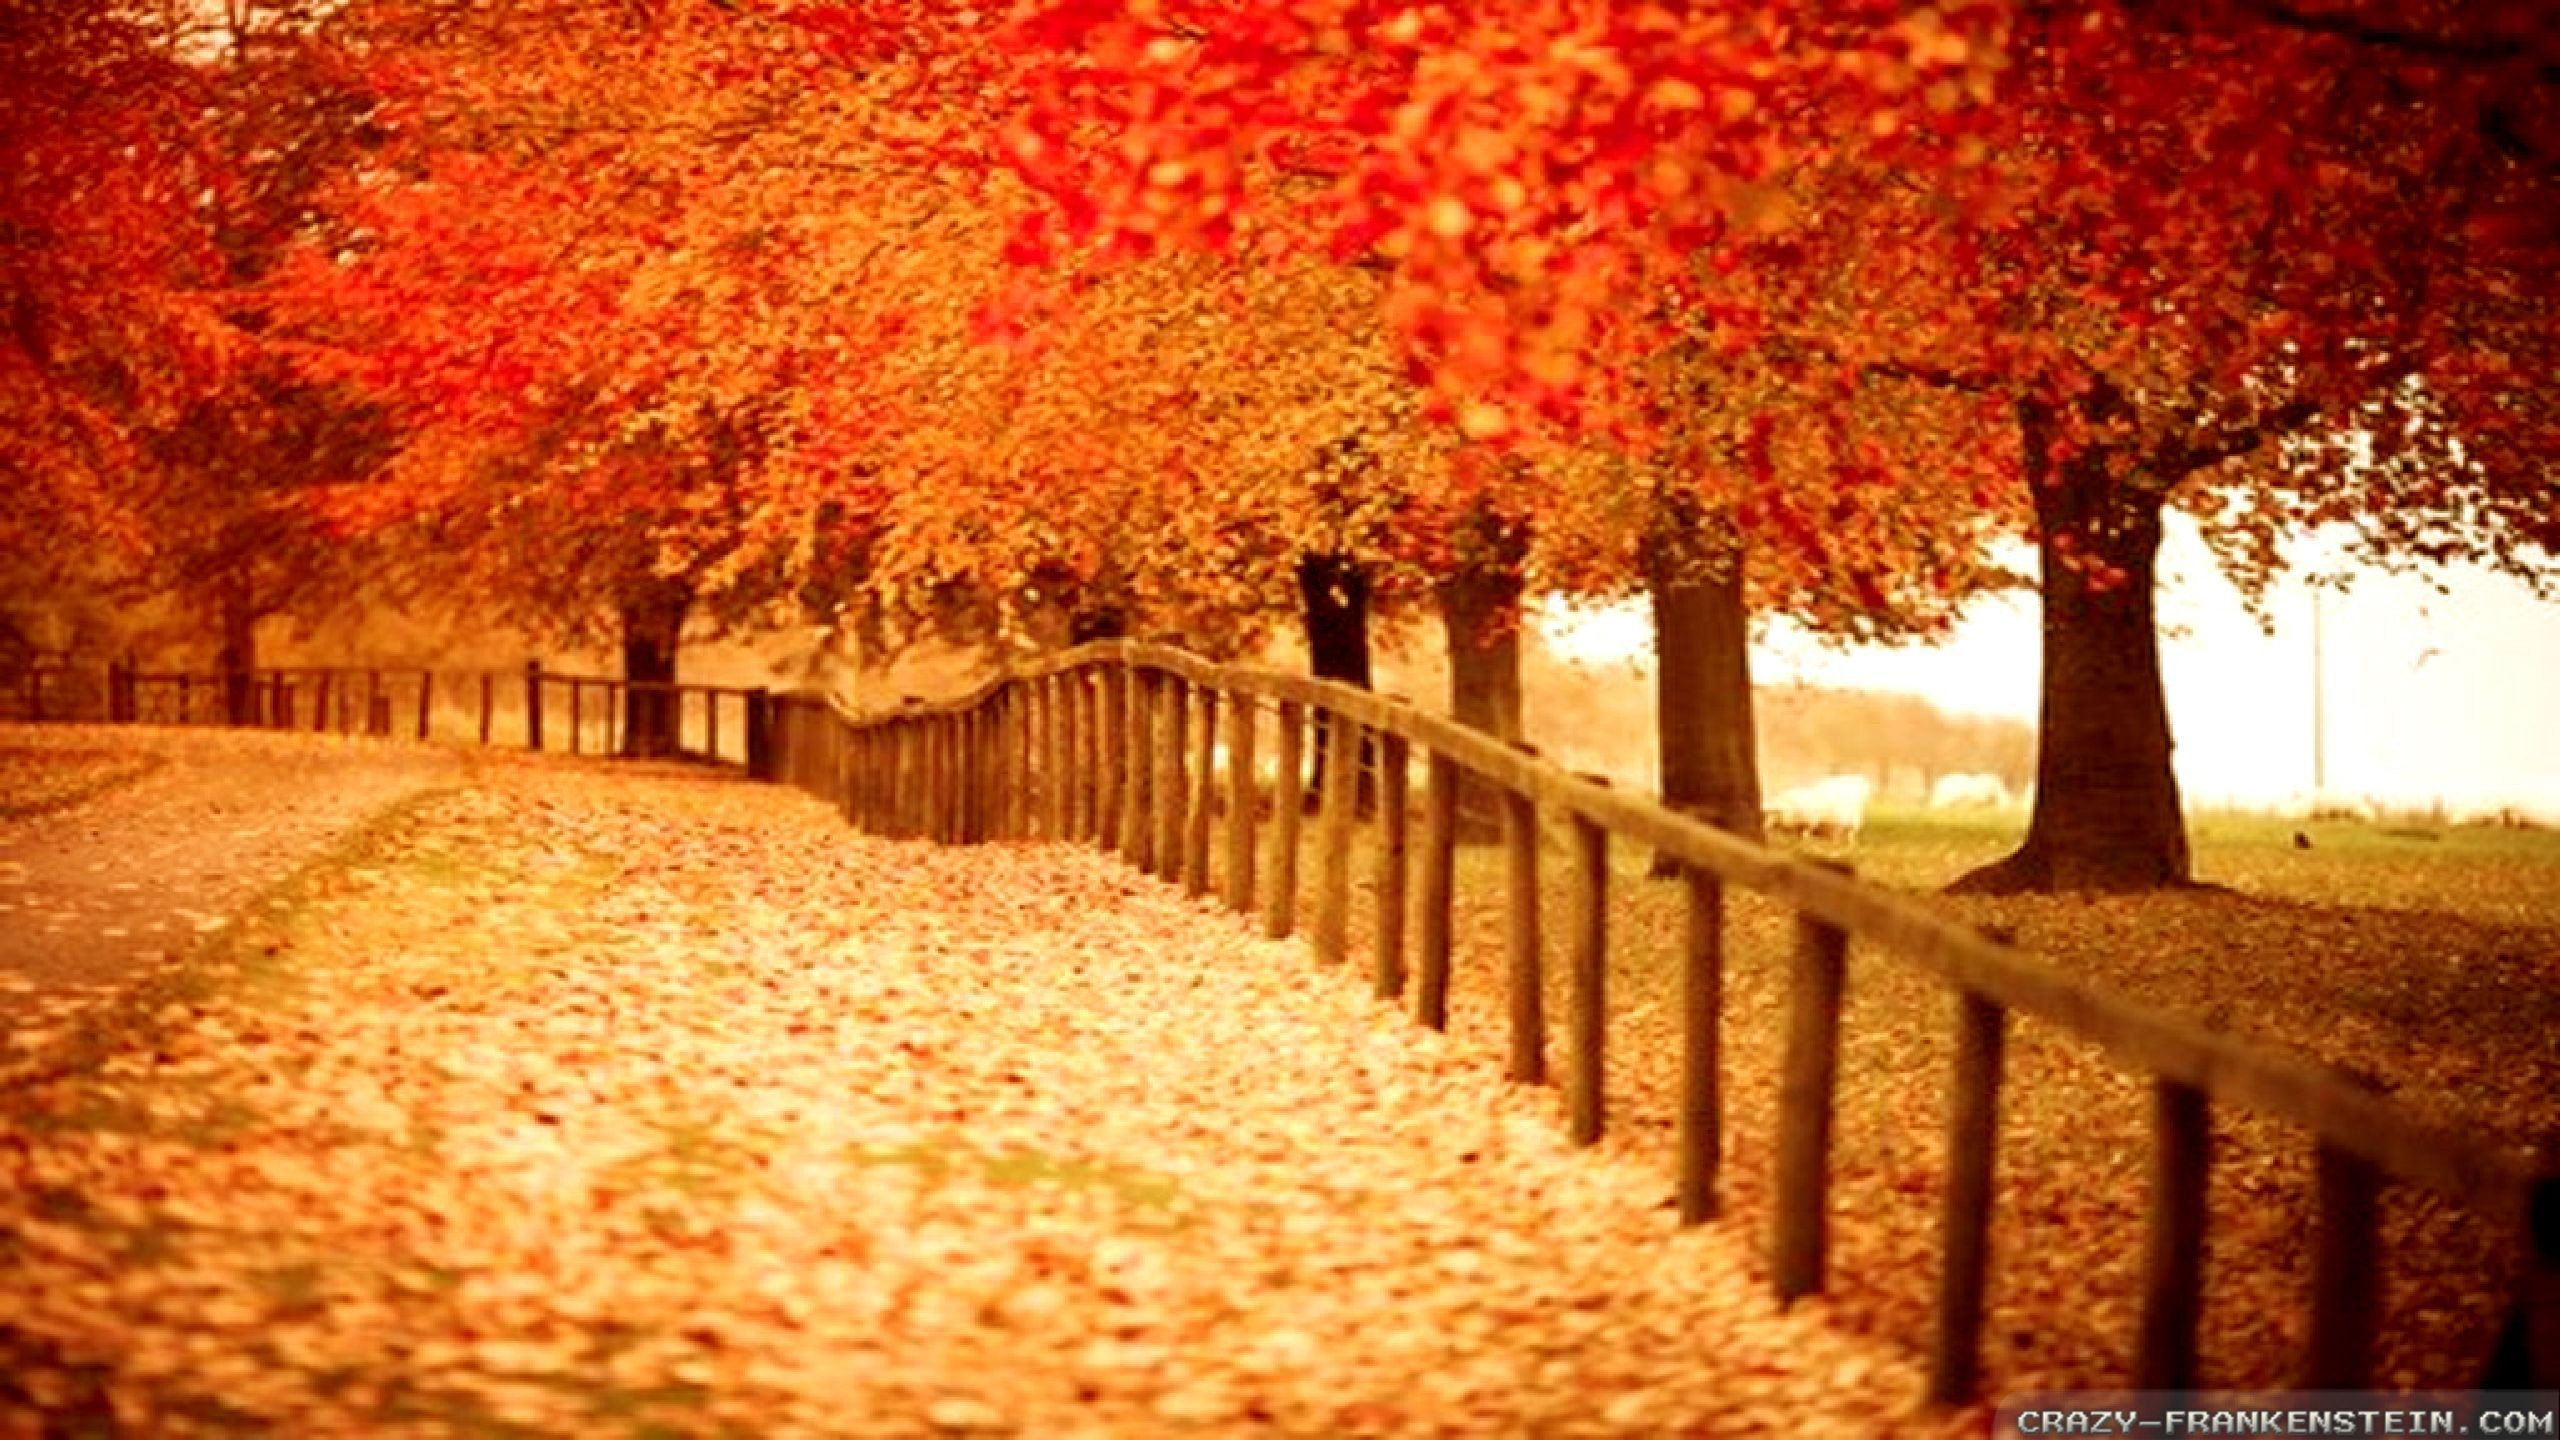 2560x1440 fall foliage desktop wallpaper 1280aƒ 1024 fall themed desktop backgrounds 38 wallpapers